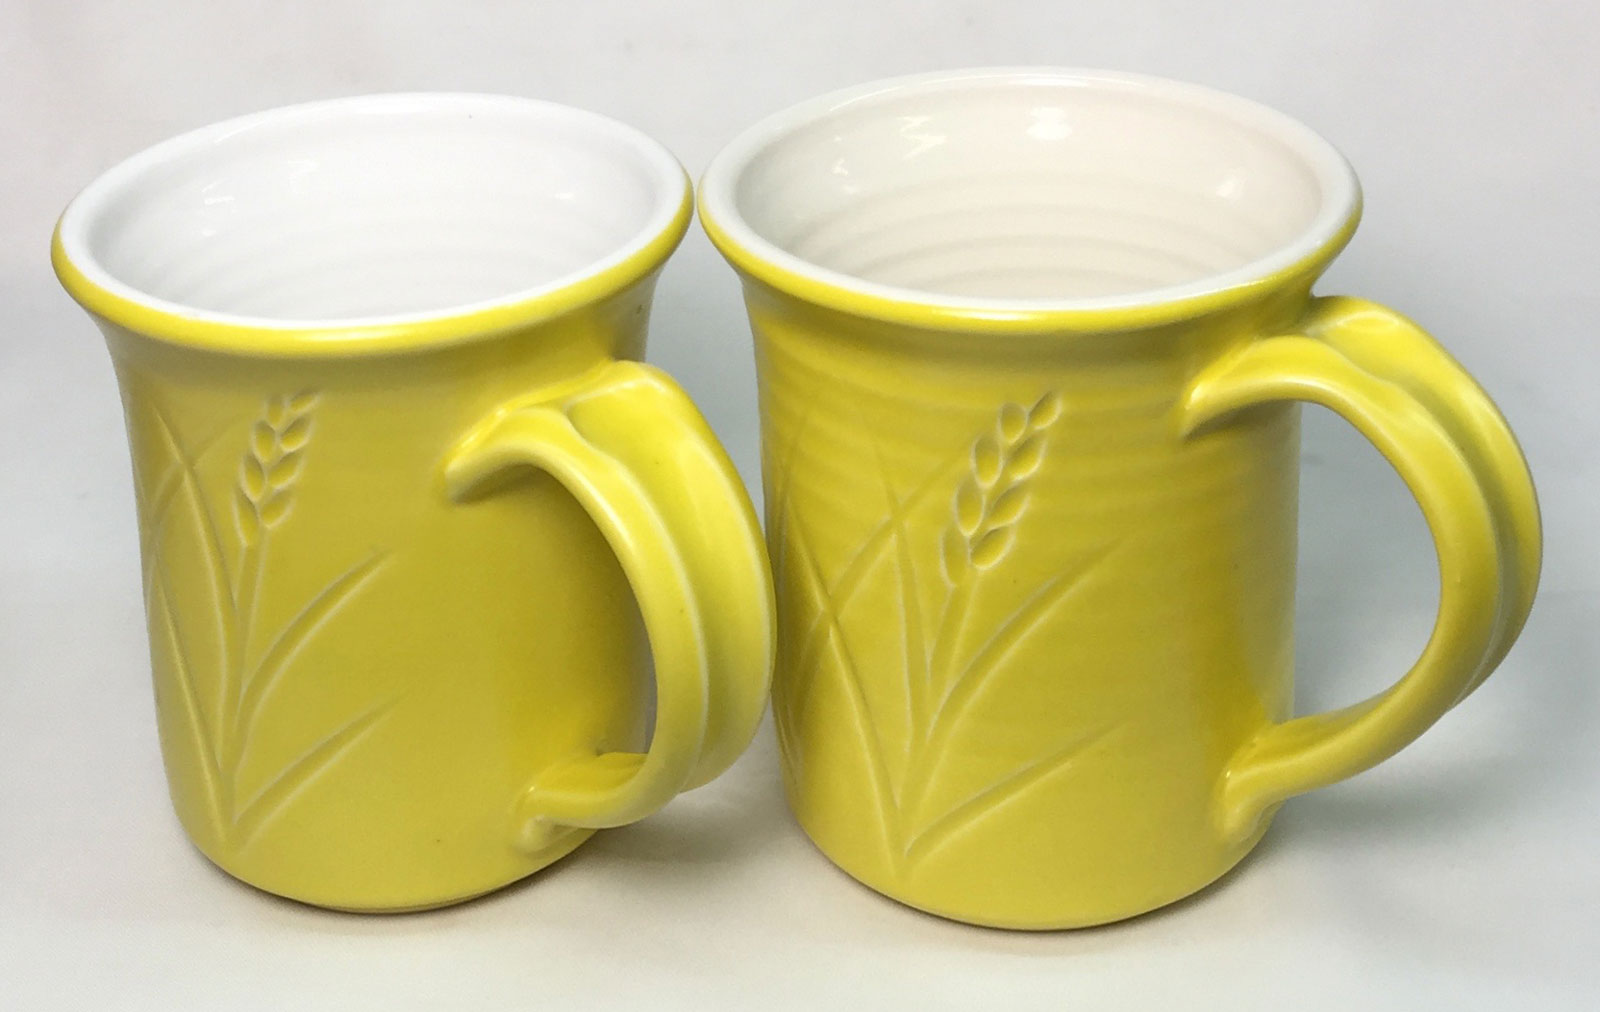 Zircopax makes the liner glaze much whiter on this porcelain